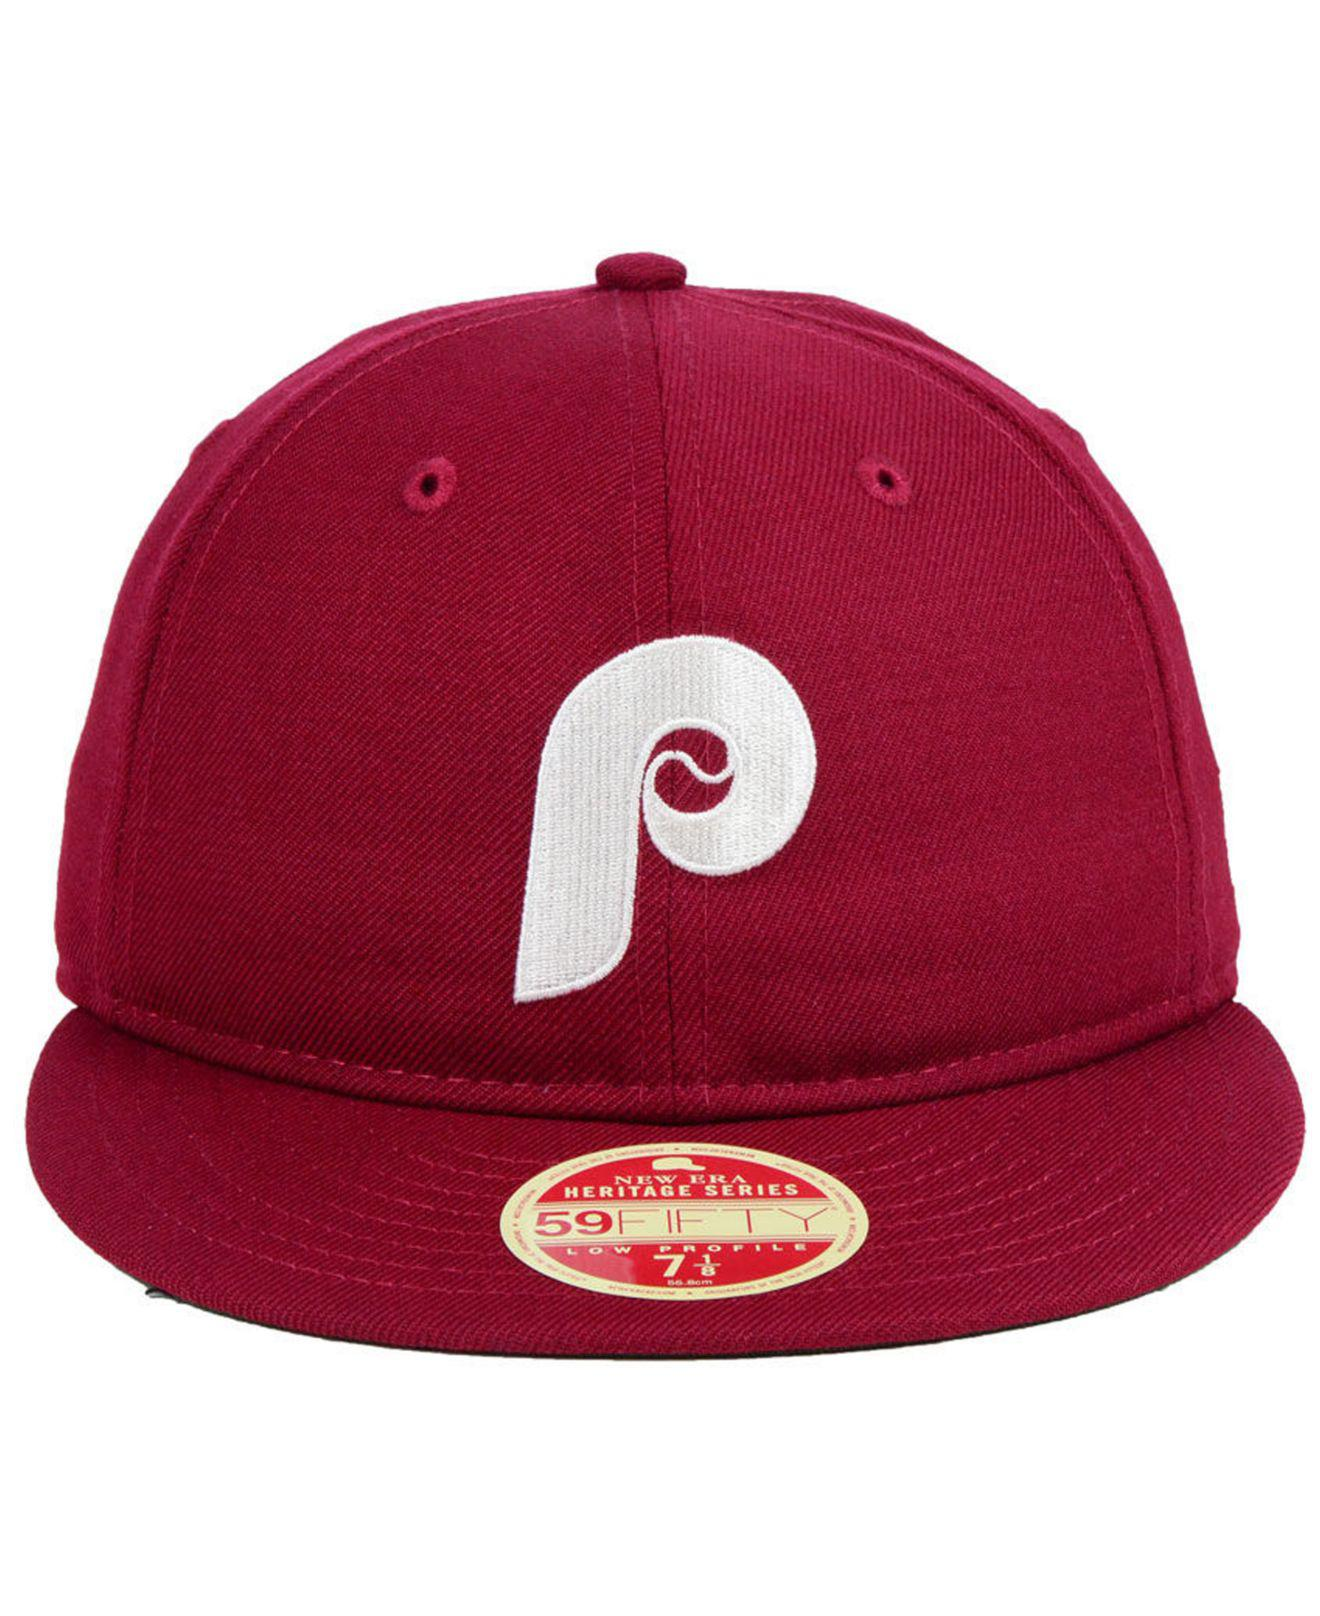 new product b966e ff116 ... germany lyst ktz philadelphia phillies heritage retro classic 59fifty  fitted cap in red for men 27874